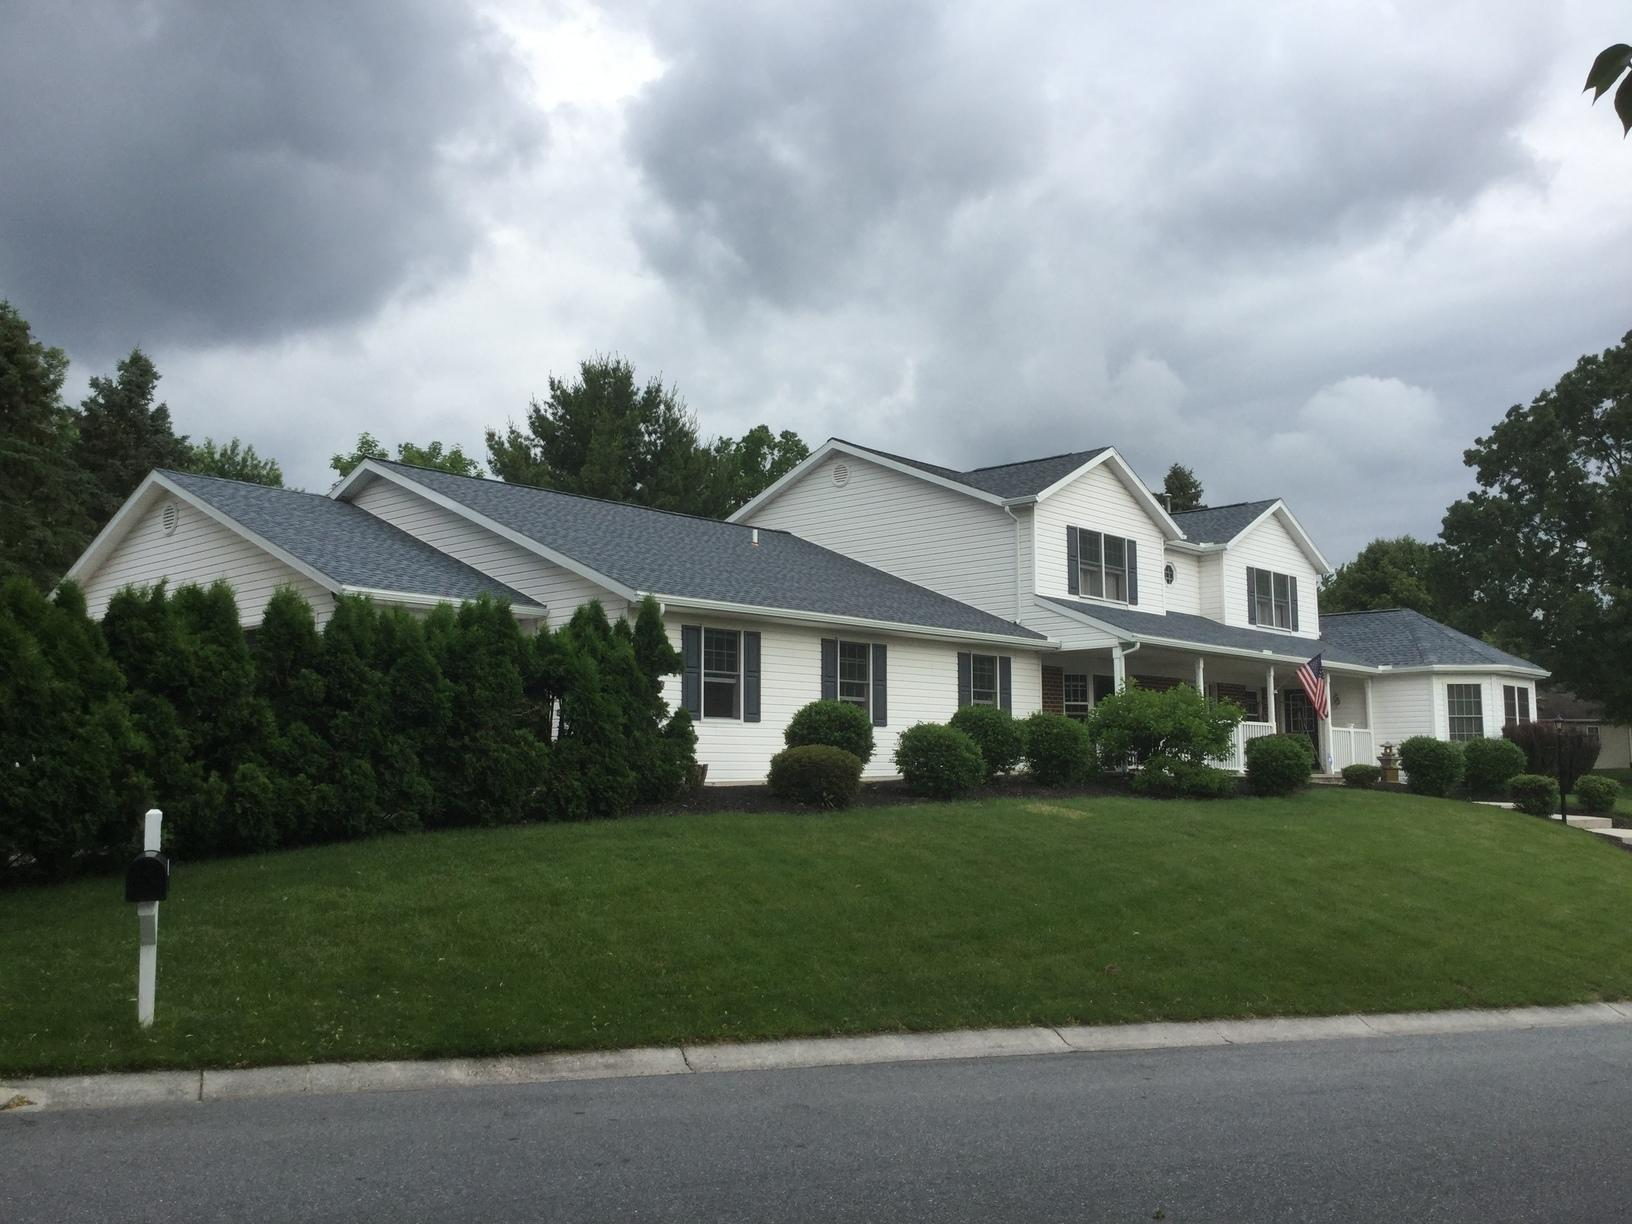 Roof replacement in,  Hershey Pa - After Photo